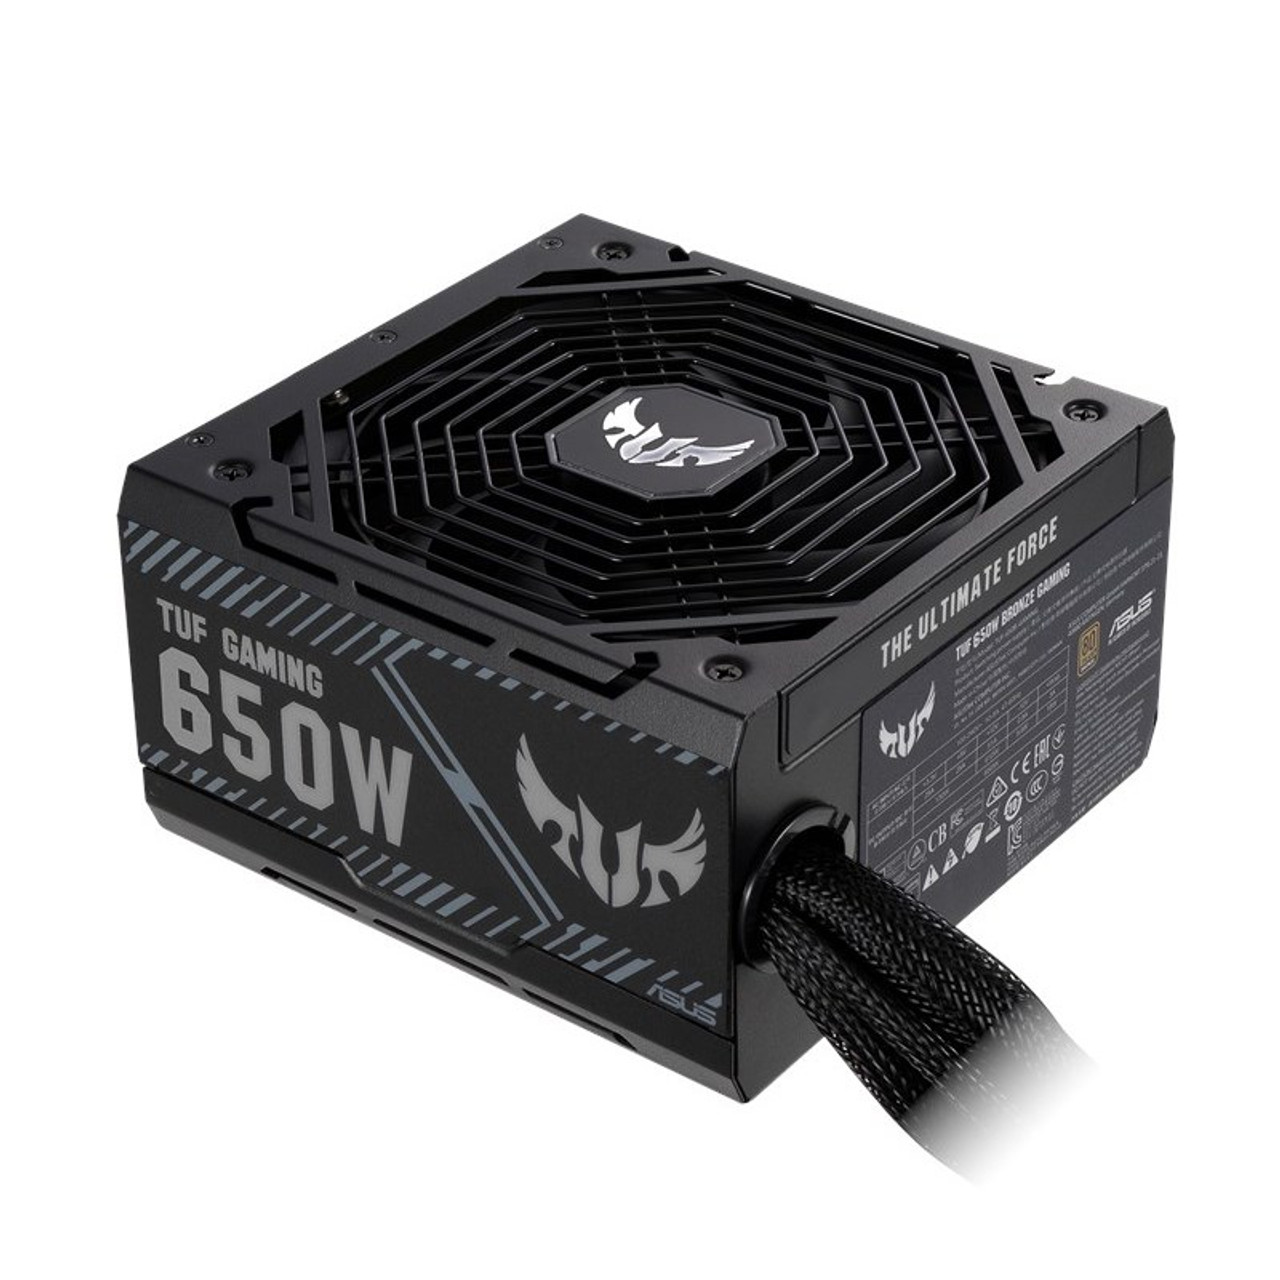 Image for Asus TUF Gaming 650W 80+ Bronze Non Modular Power Supply CX Computer Superstore